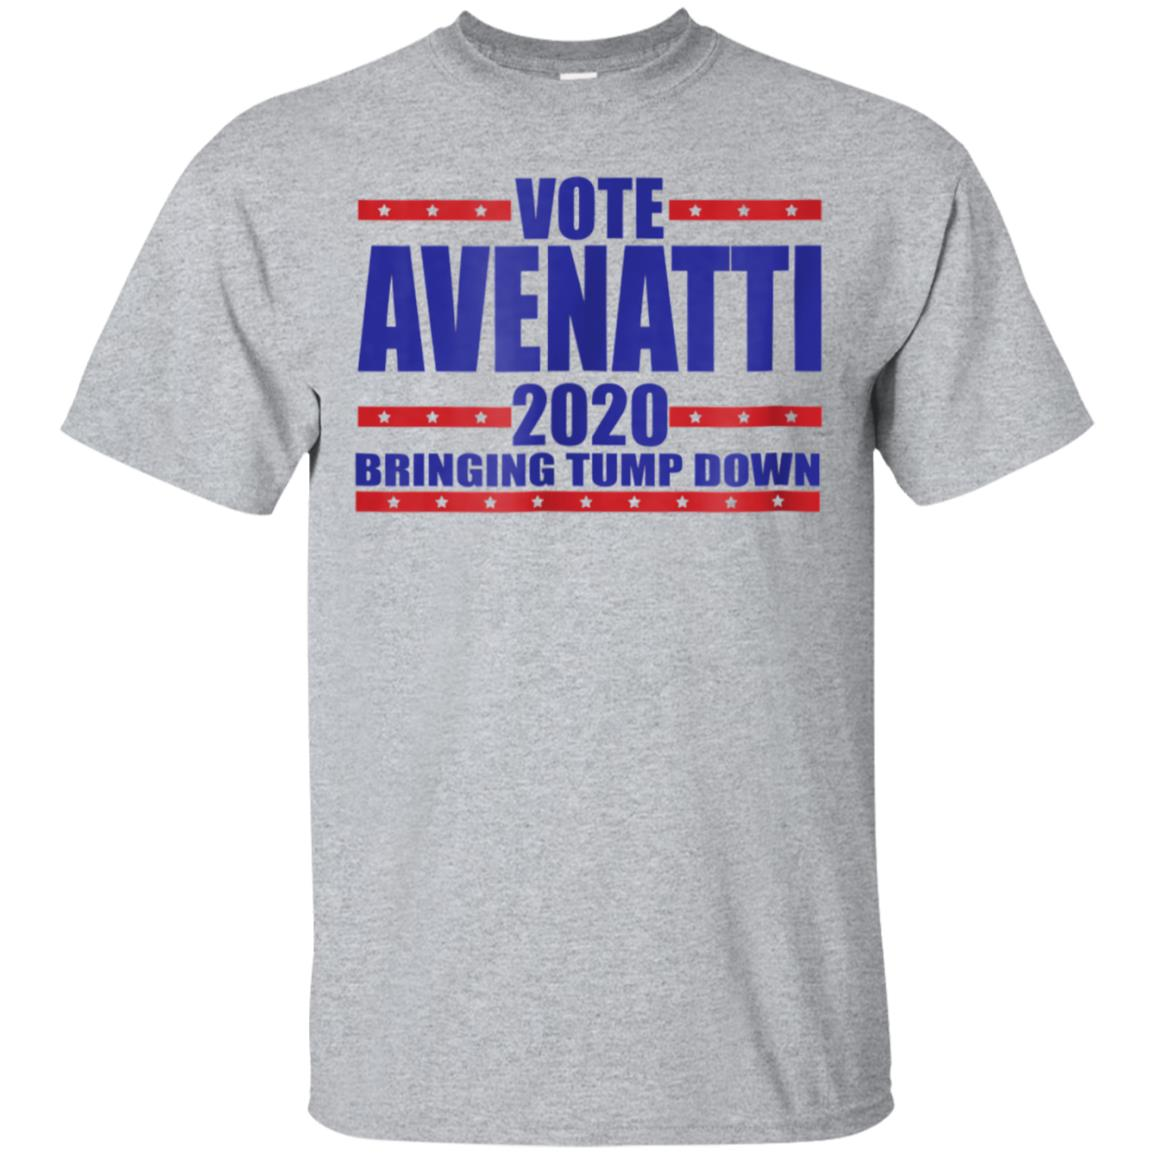 VOTE Avenatti 2020 - Bringing Tump Down SHIRT 99promocode